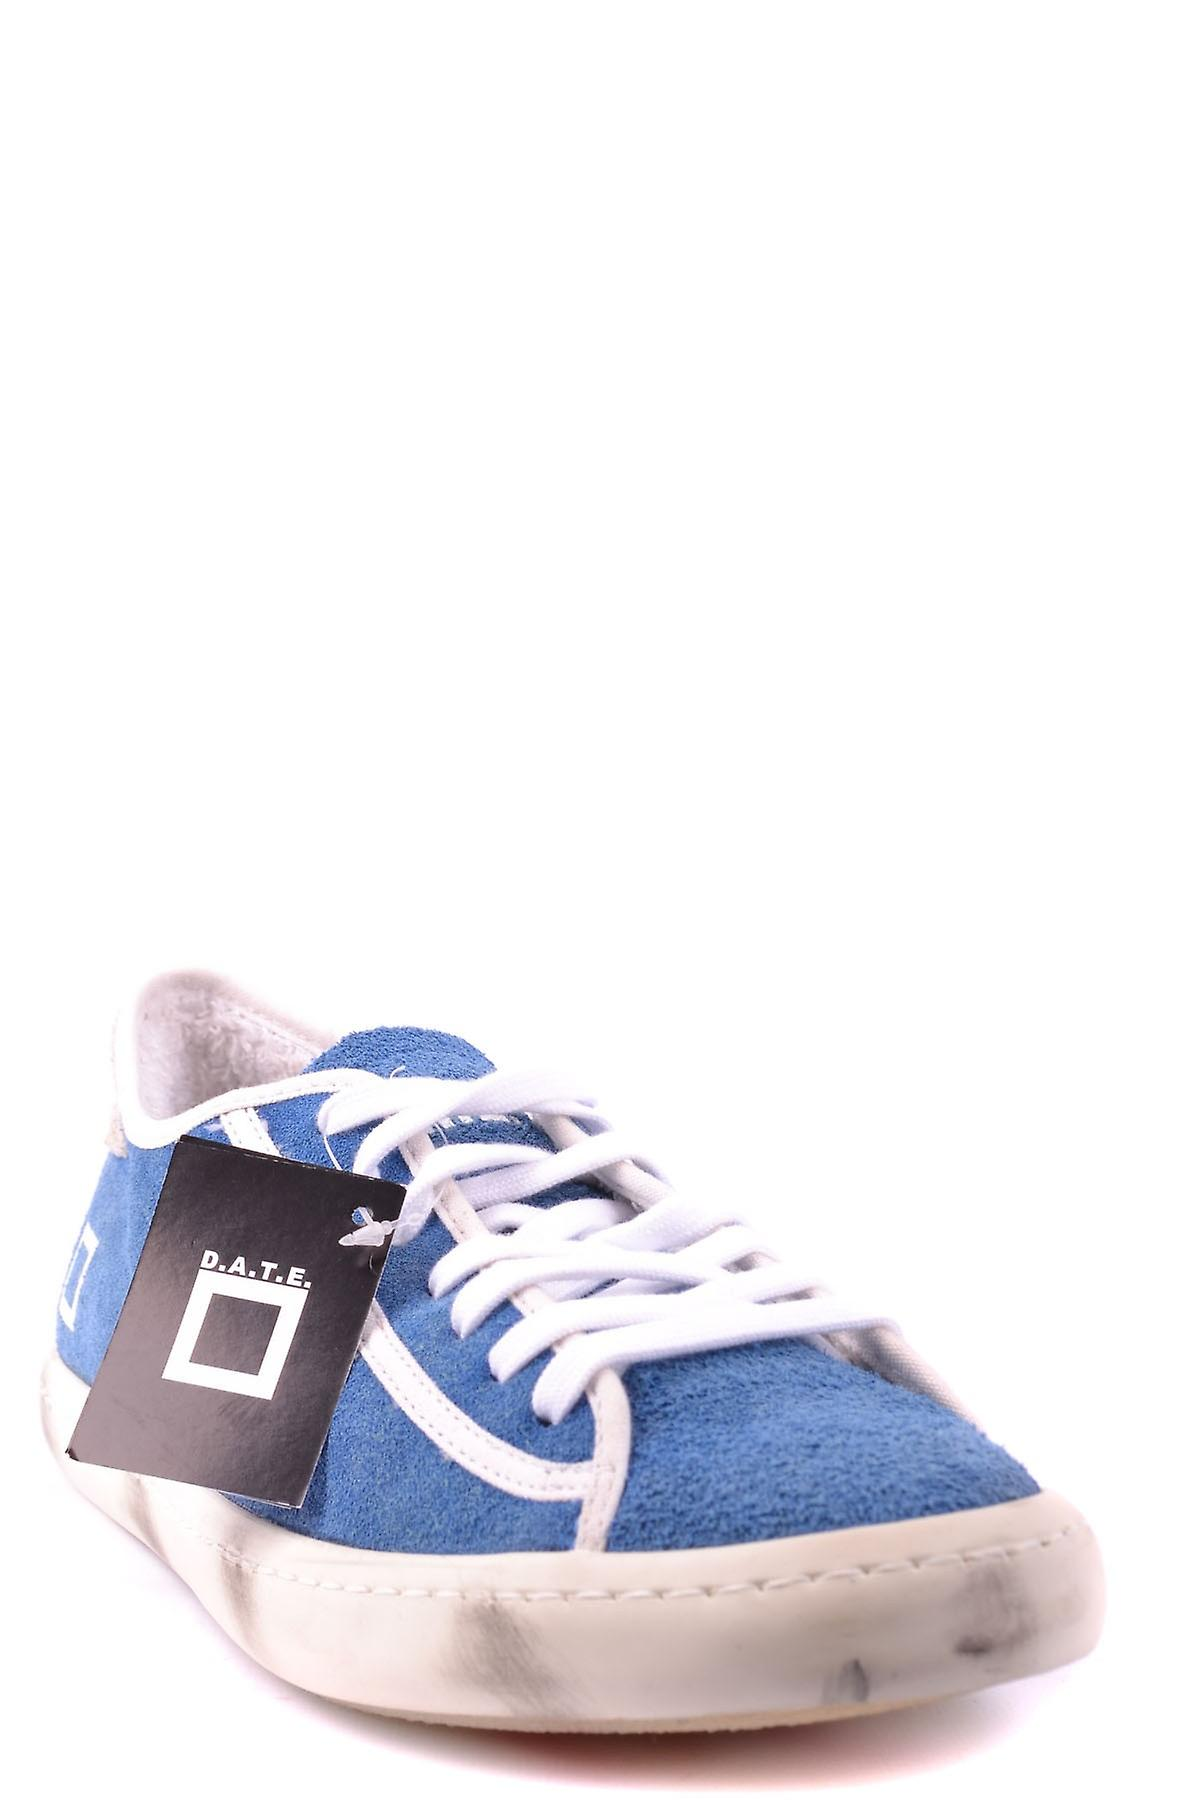 D.a.t.e. Ezbc177019 Men-apos;s Light Blue Fabric Sneakers